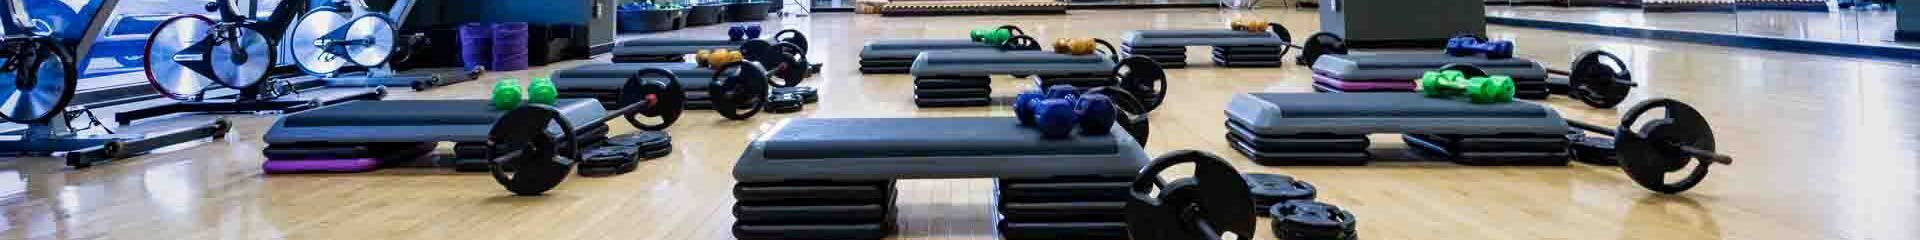 Checkout for Harris Express YMCA - Branch Amenities